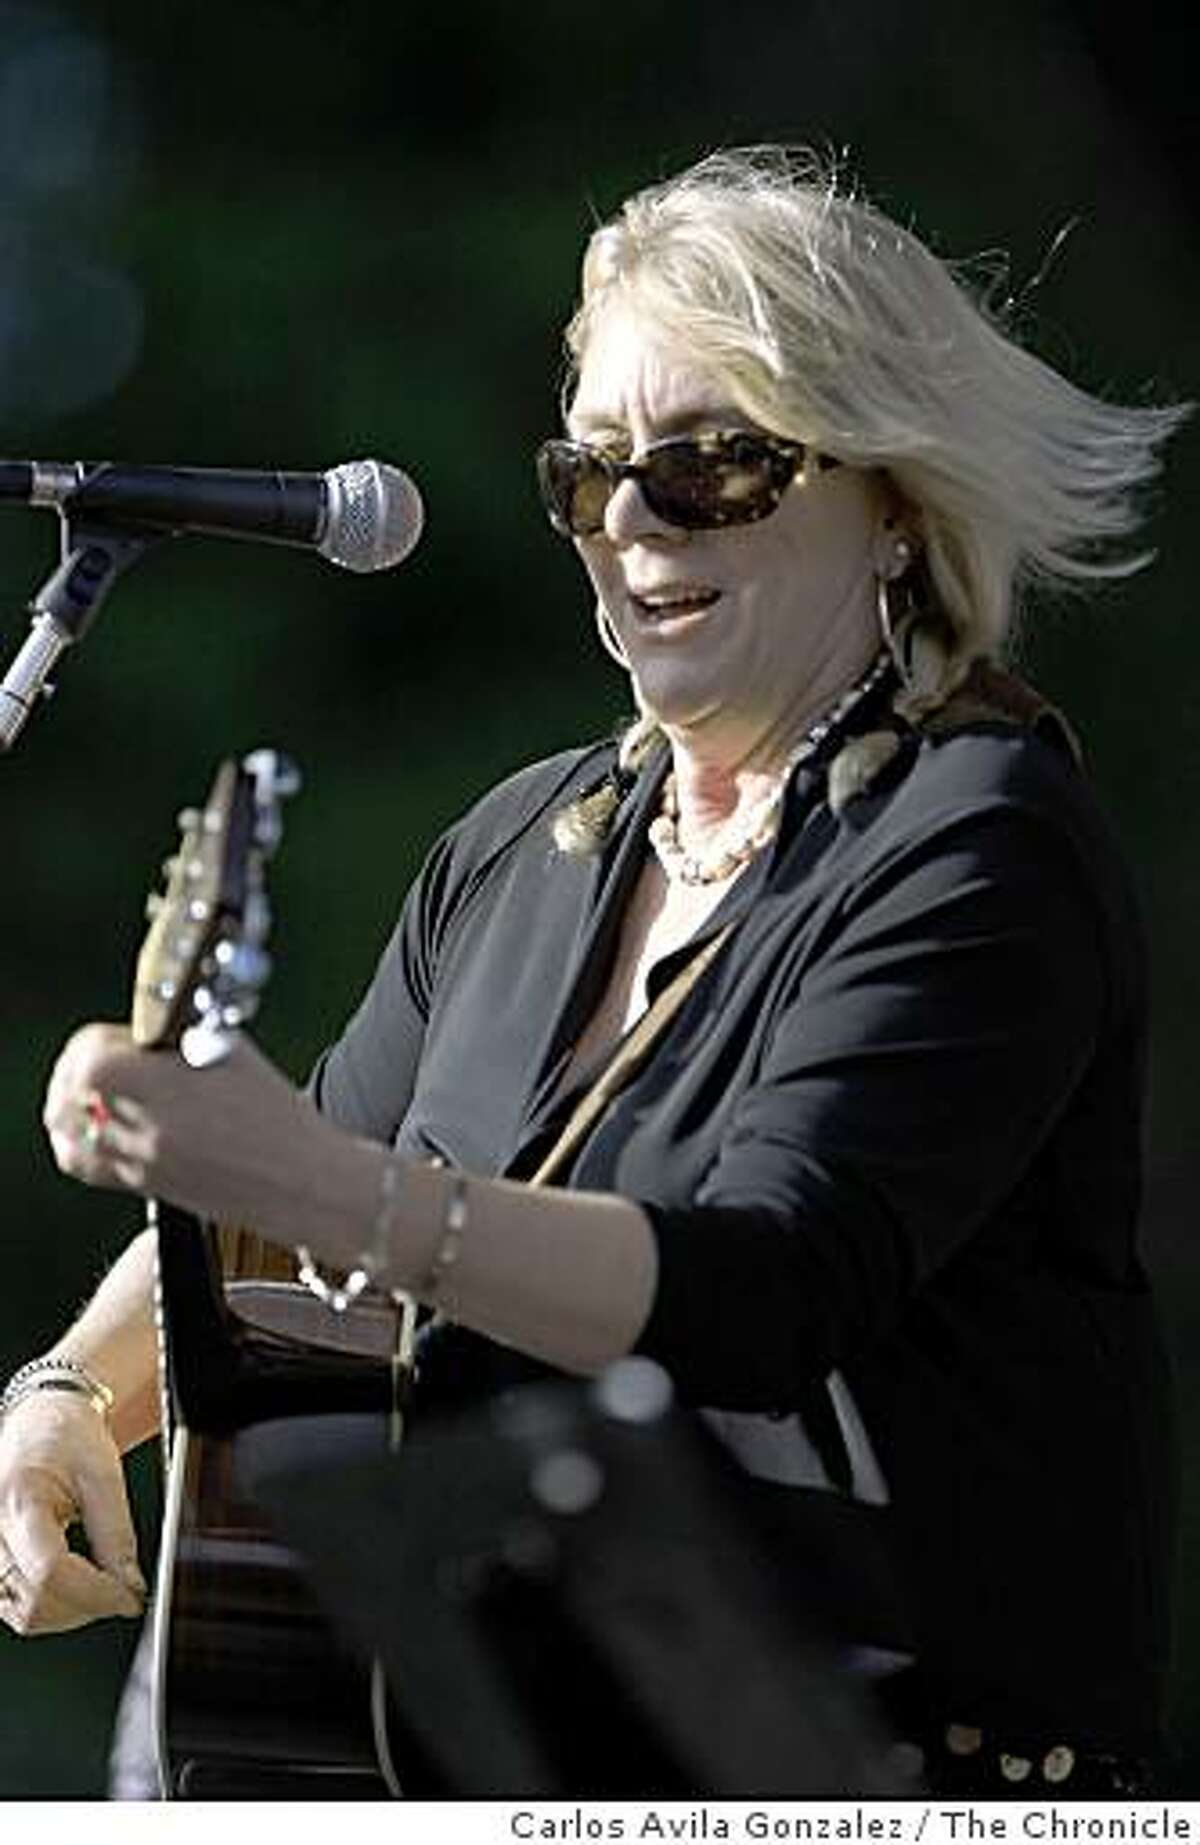 Pegi Young, playing on the Arrow Stage during the final day of the eighth Hardly Strictly Bluegrass Festival in San Francisco, Calif., on Sunday, October 5, 2008.